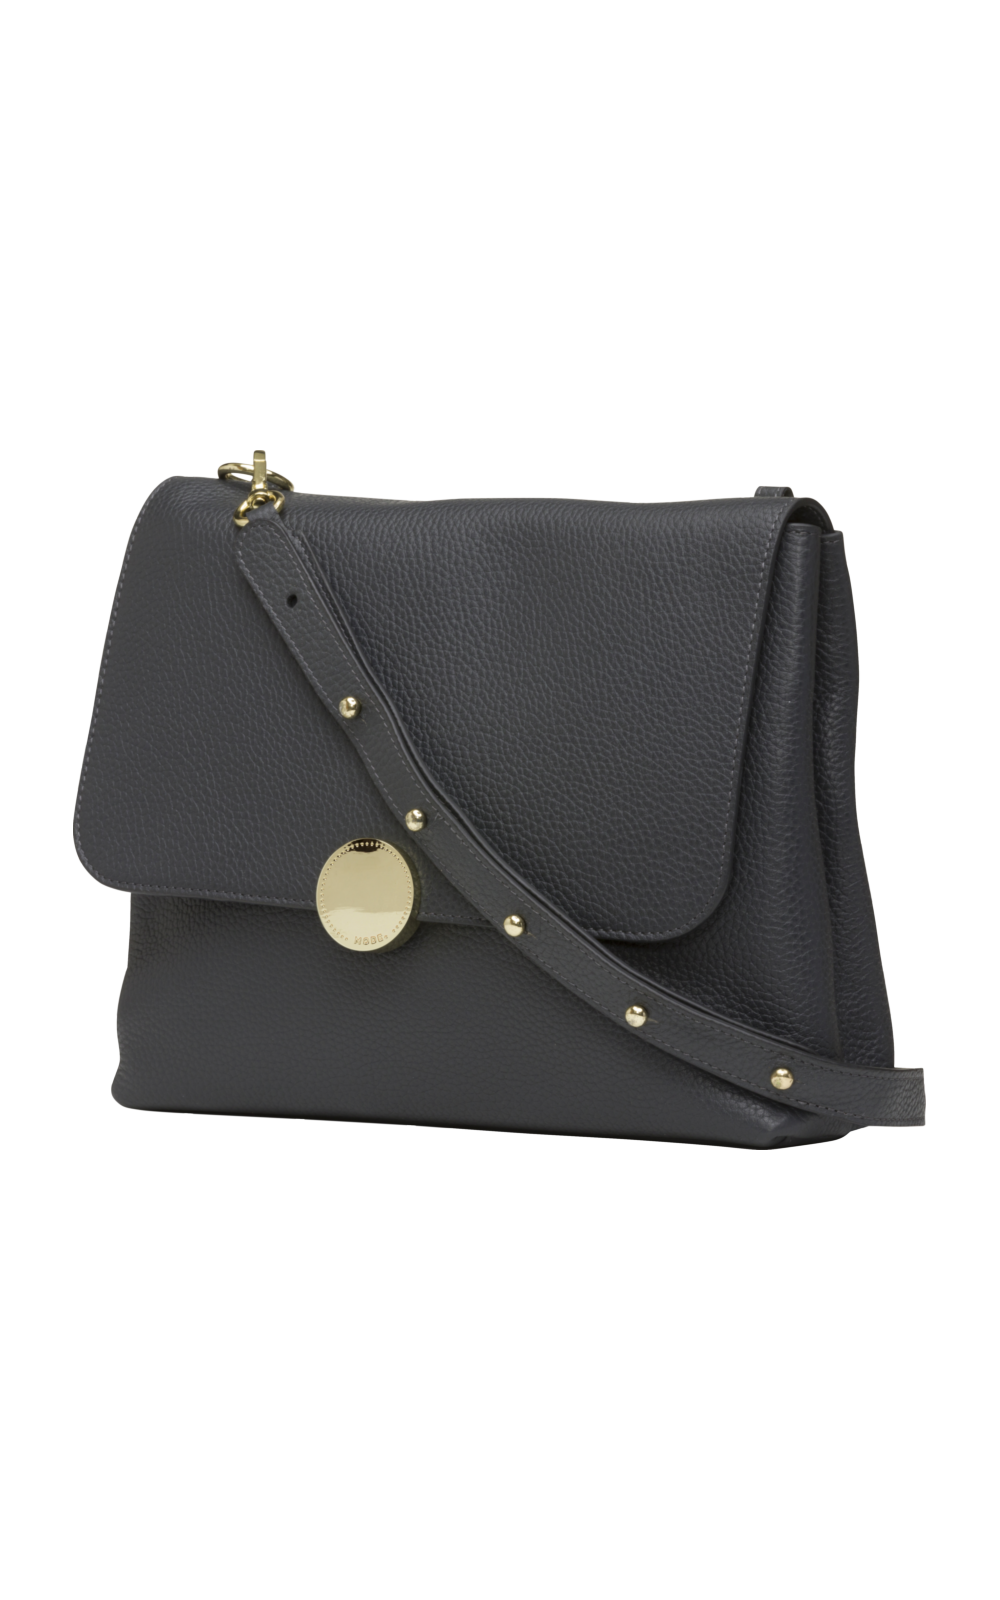 dbramante1928 Florence - Cross Body Bag - M - Dark Grey